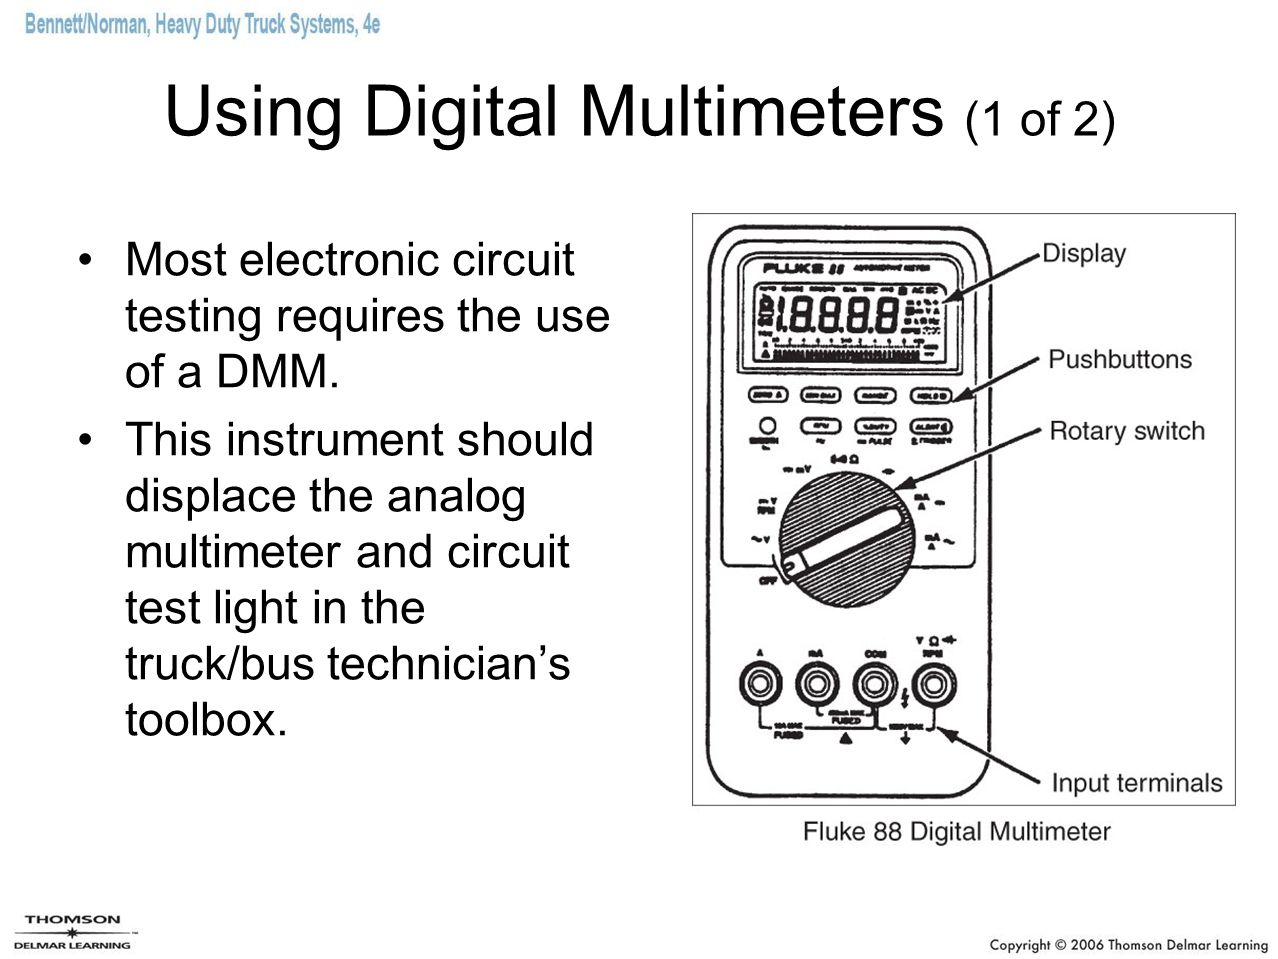 Using Digital Multimeters (1 of 2)